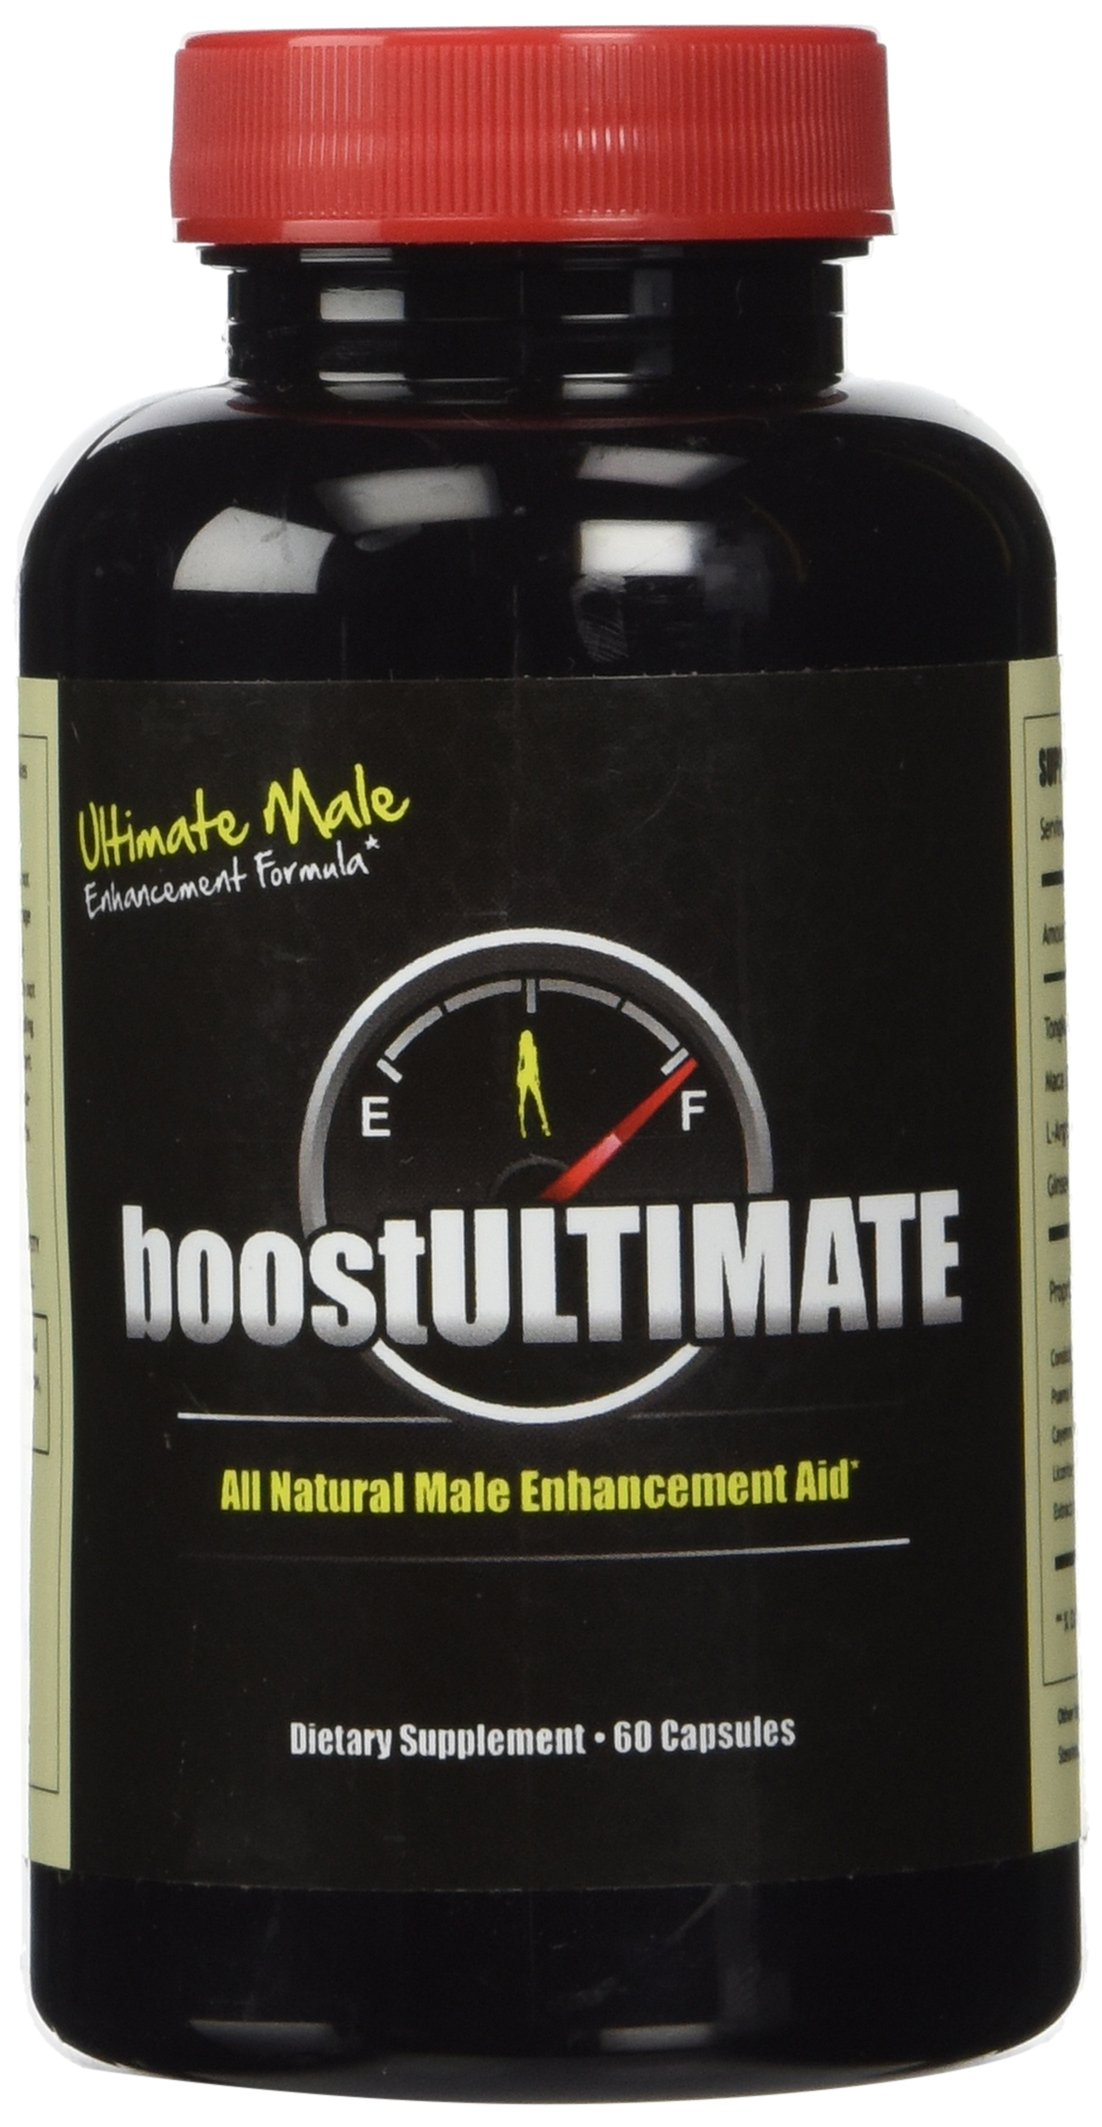 boostULTIMATE - 60 Capsules - Increase Workout Stamina, Muscle Size, Neem, Energy & More 1 Month Supply